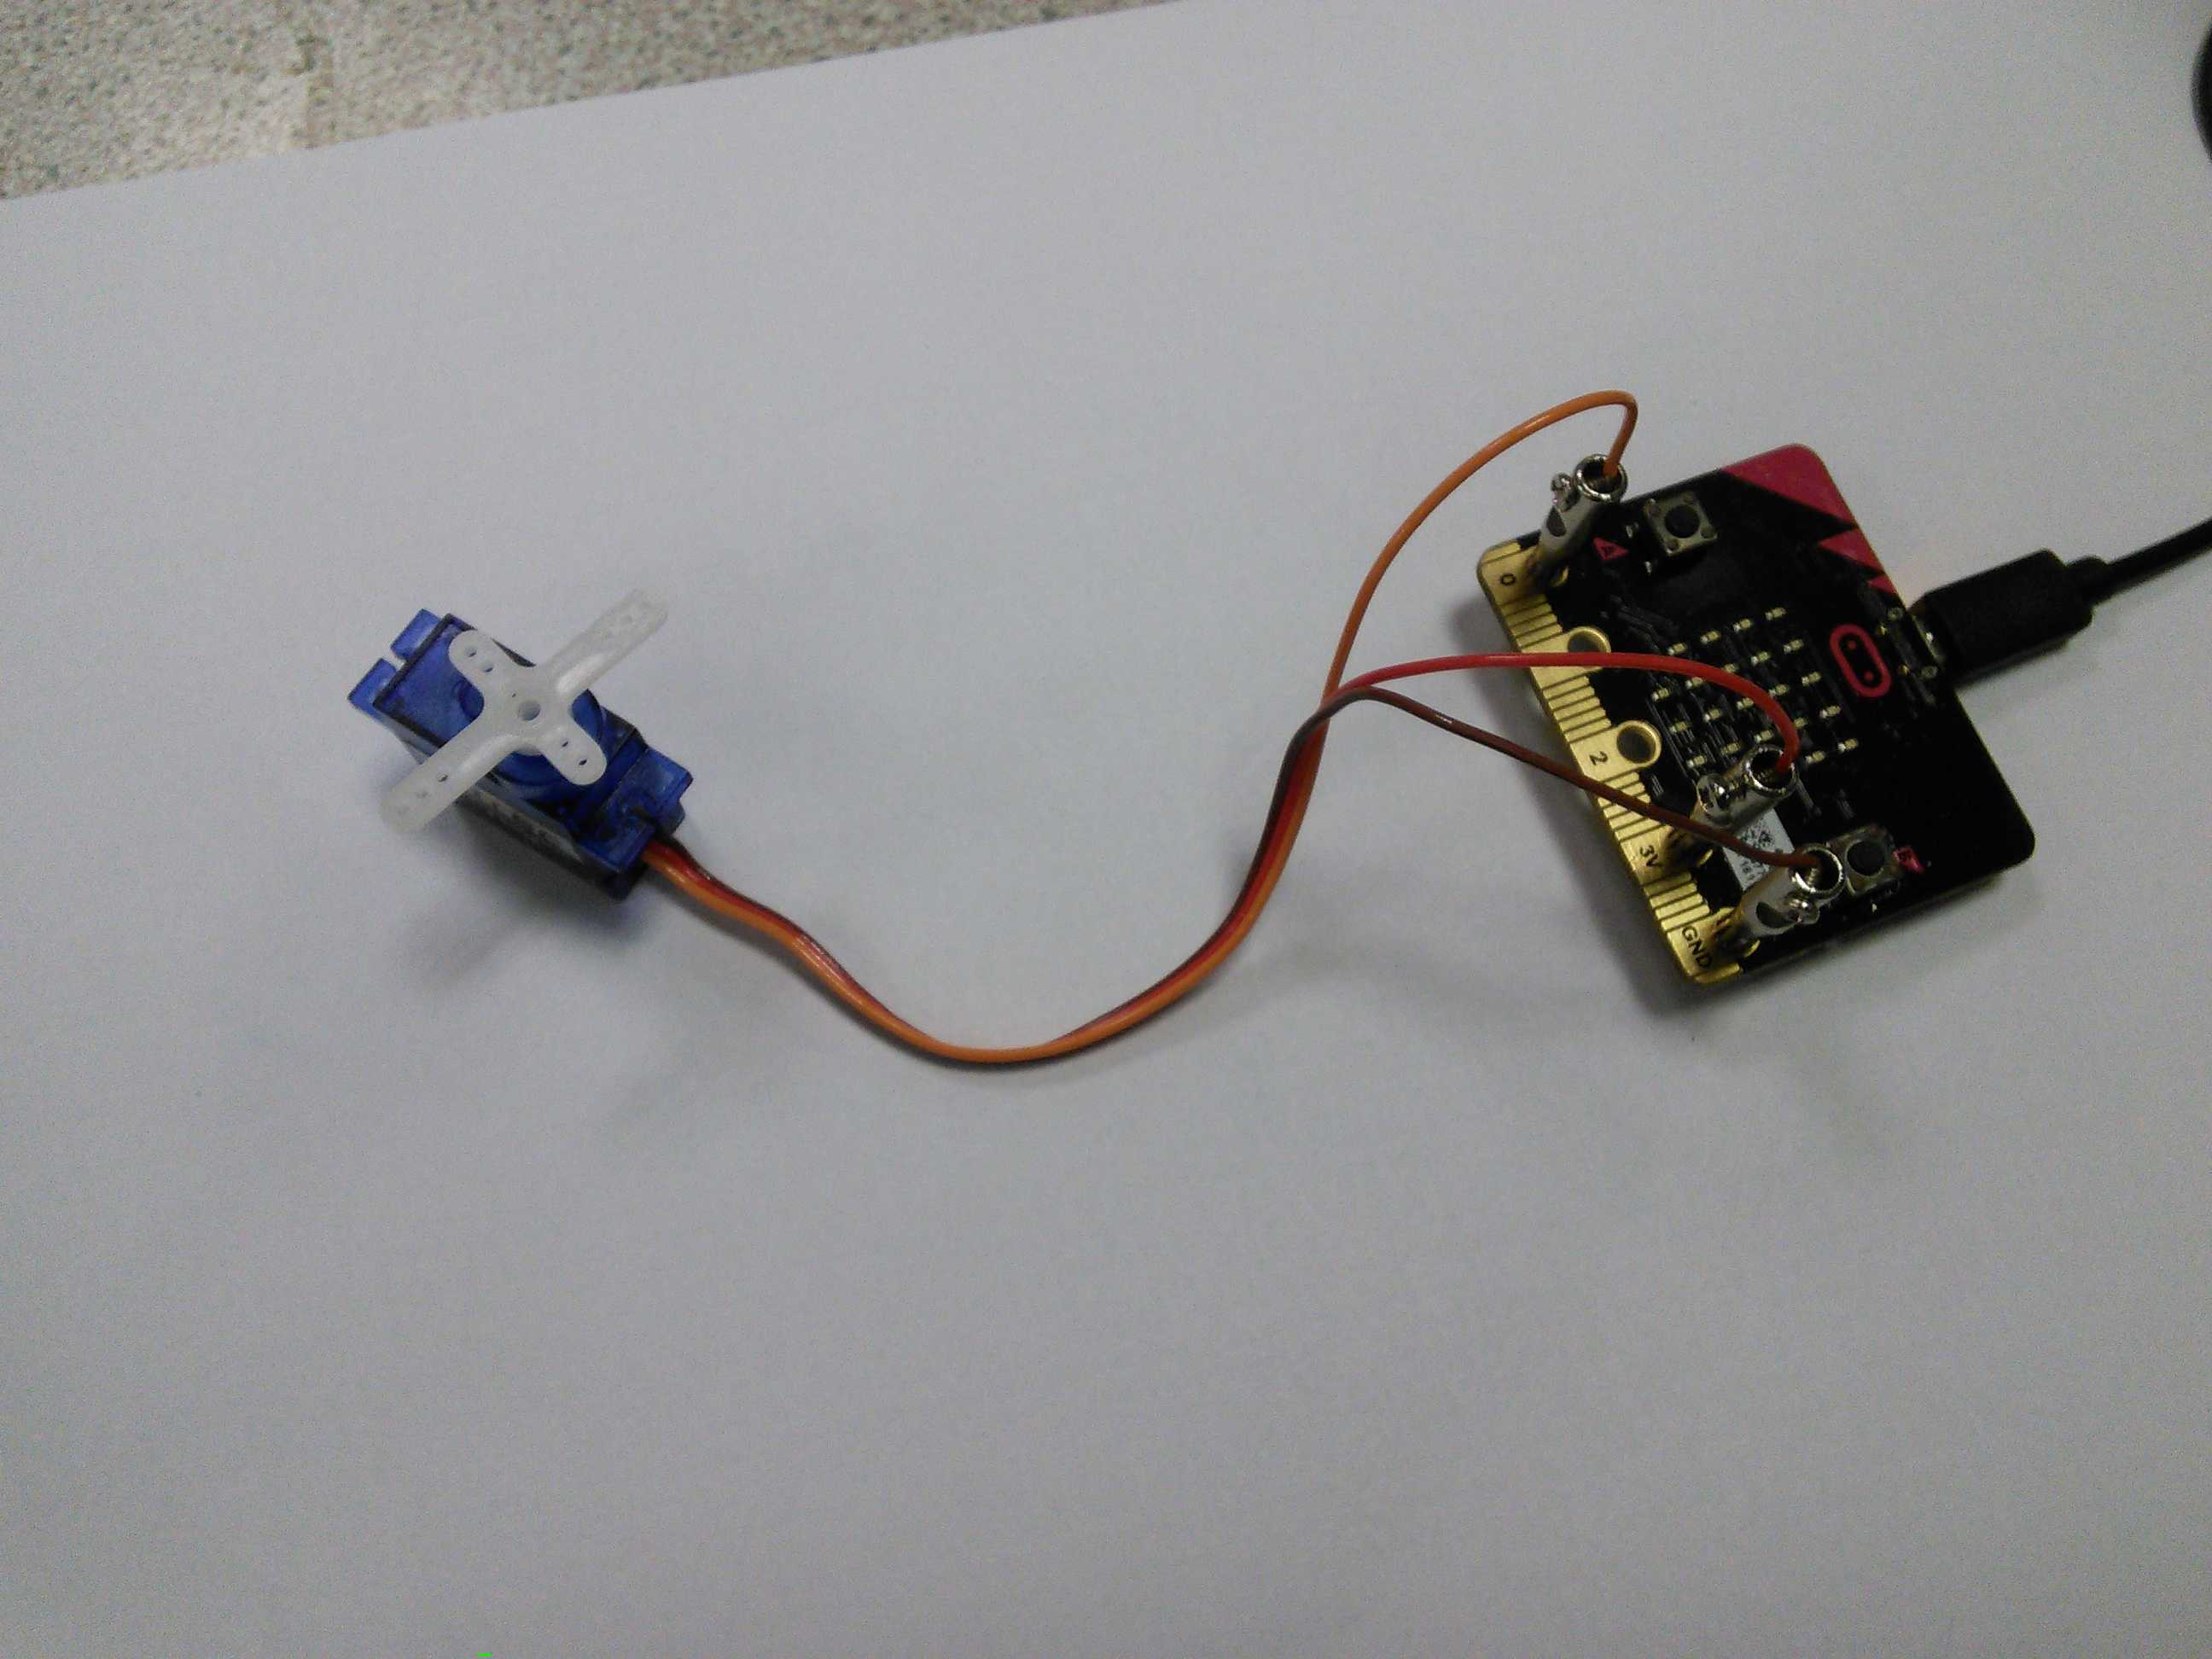 Microbit How To Control Servos Learnlearncouk Servo Wiring Red Black White With Connected Using Banana Plugs Standard Wire